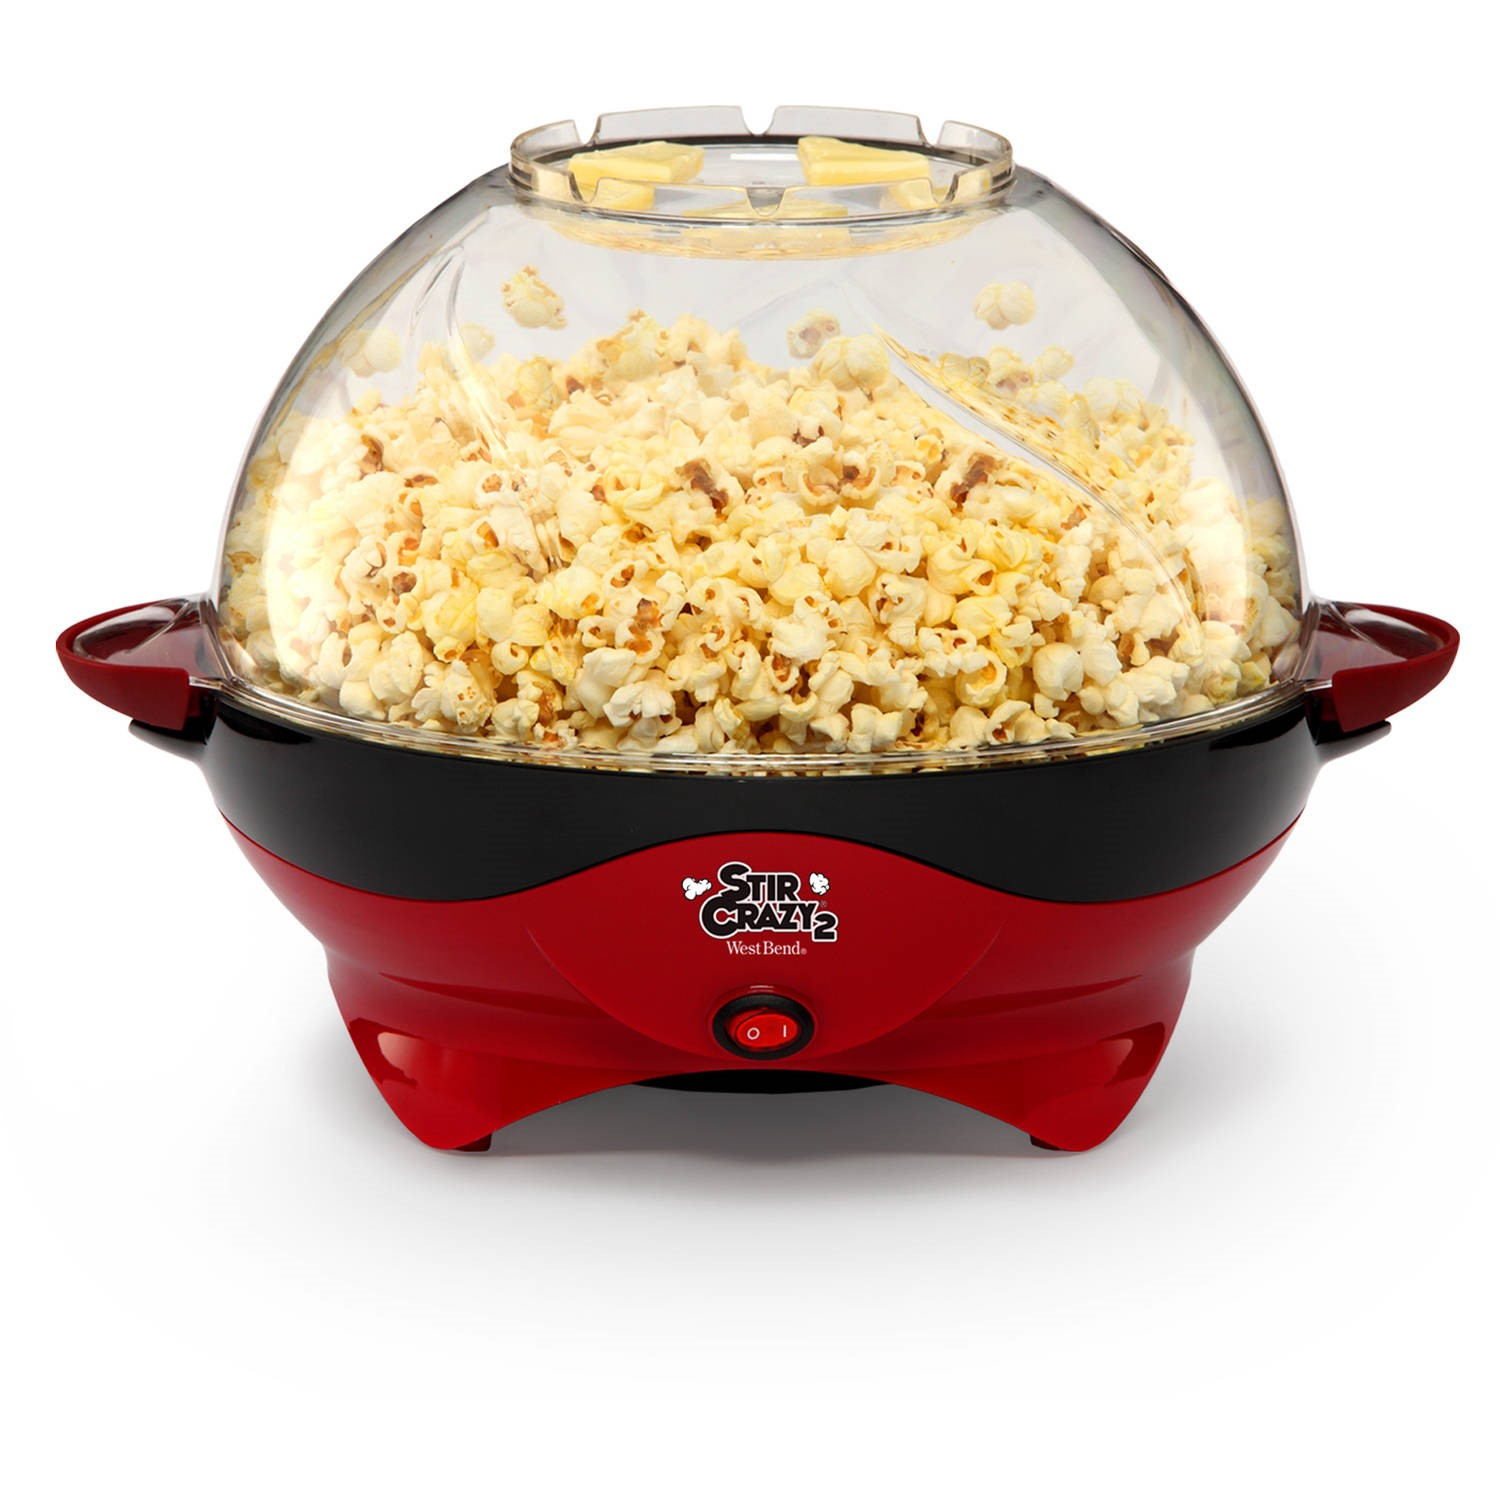 West Bend Stir Crazy Deluxe Popcorn Popper Red Walmart